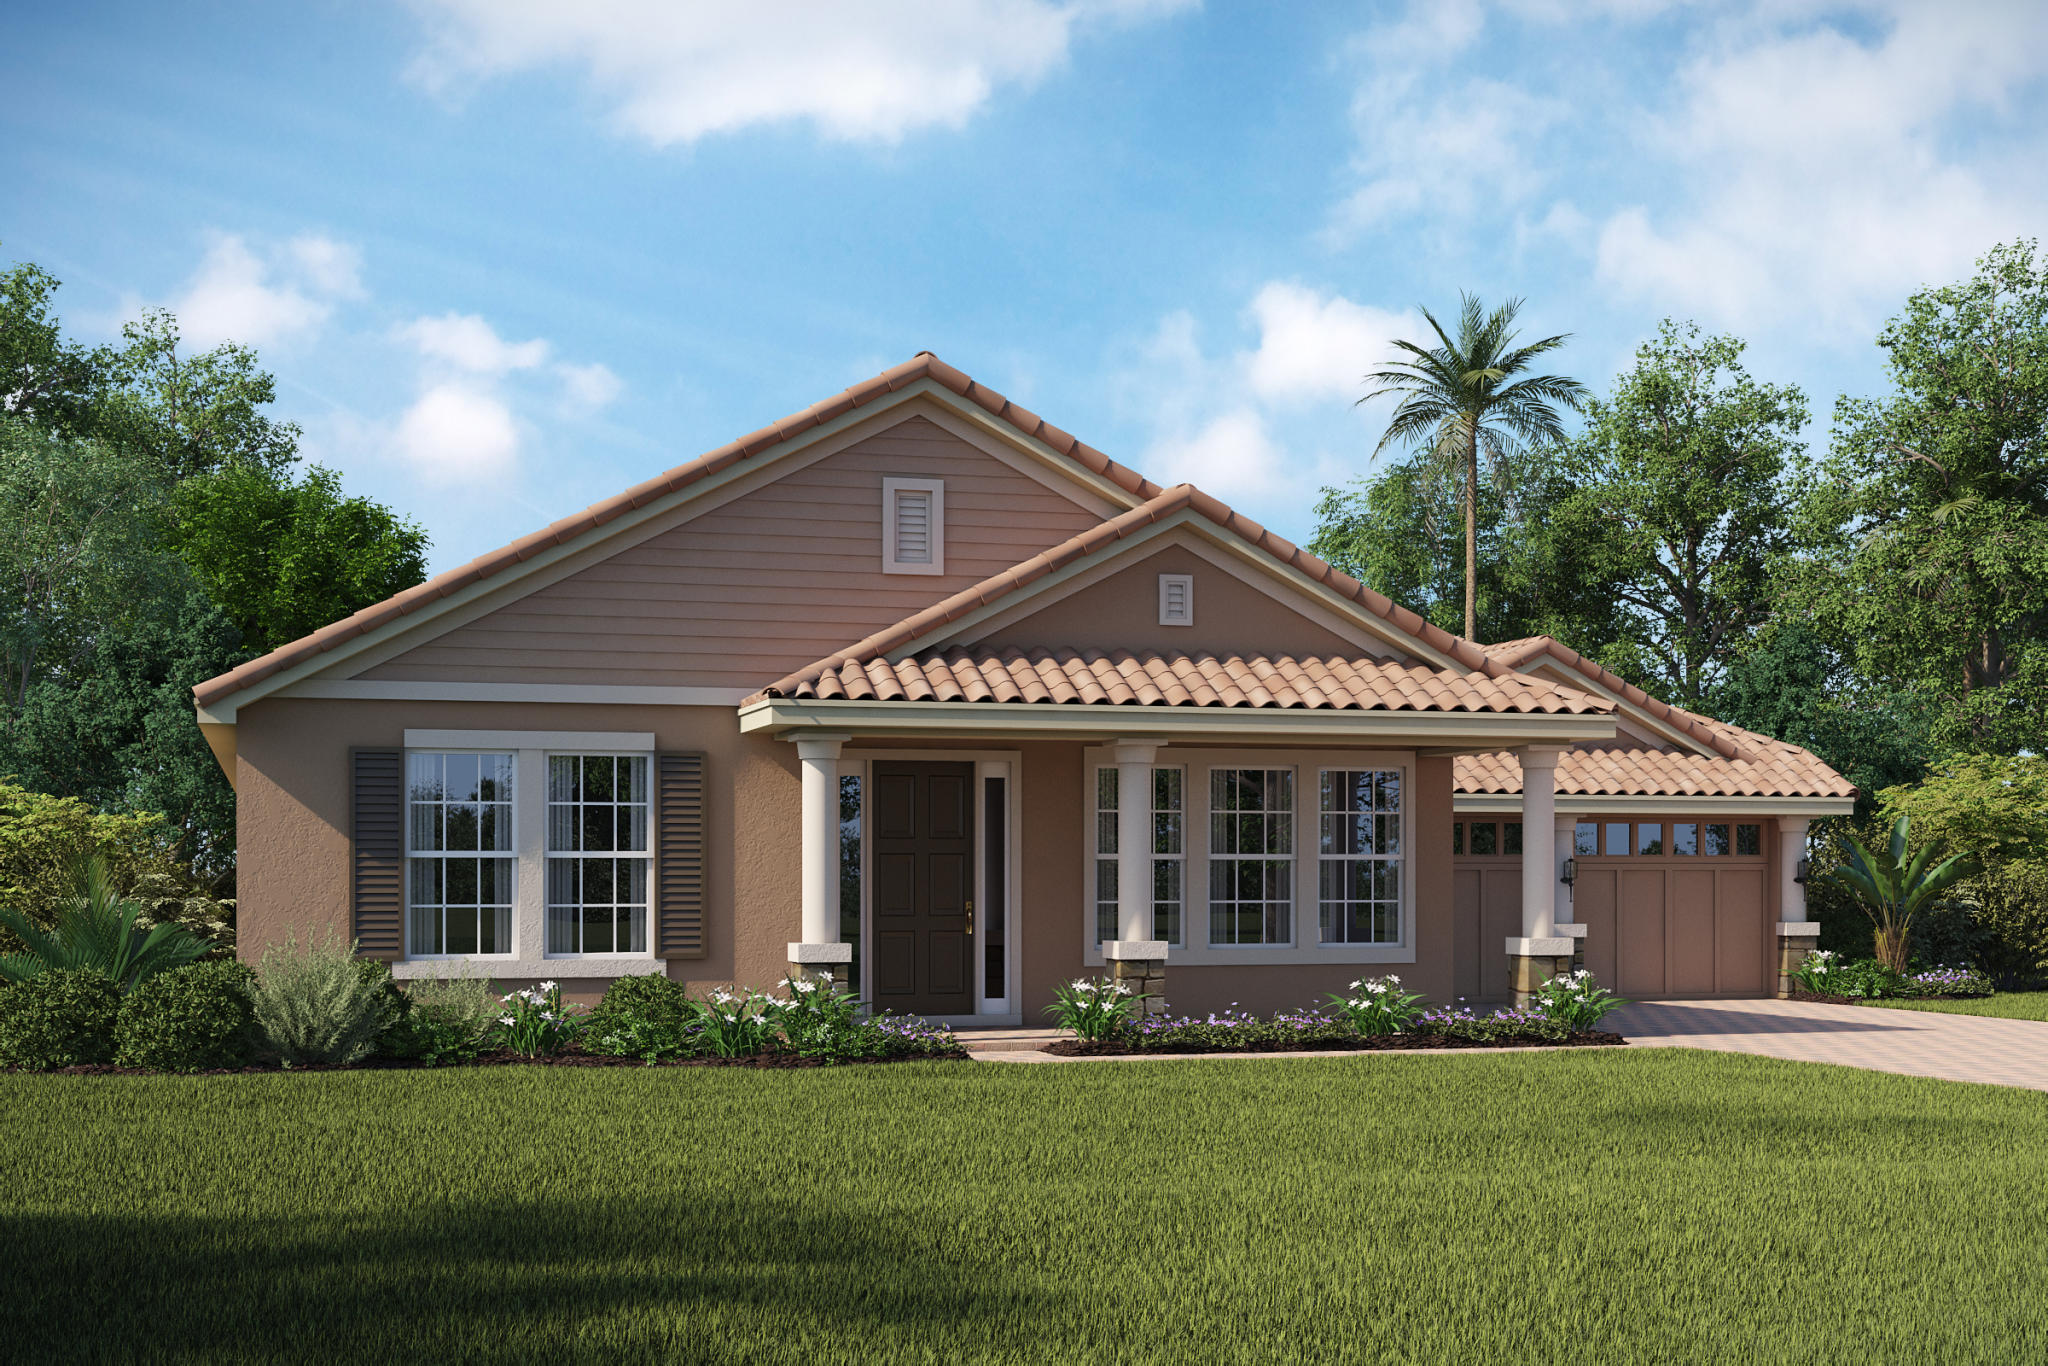 garren plan for sale winter garden fl trulia